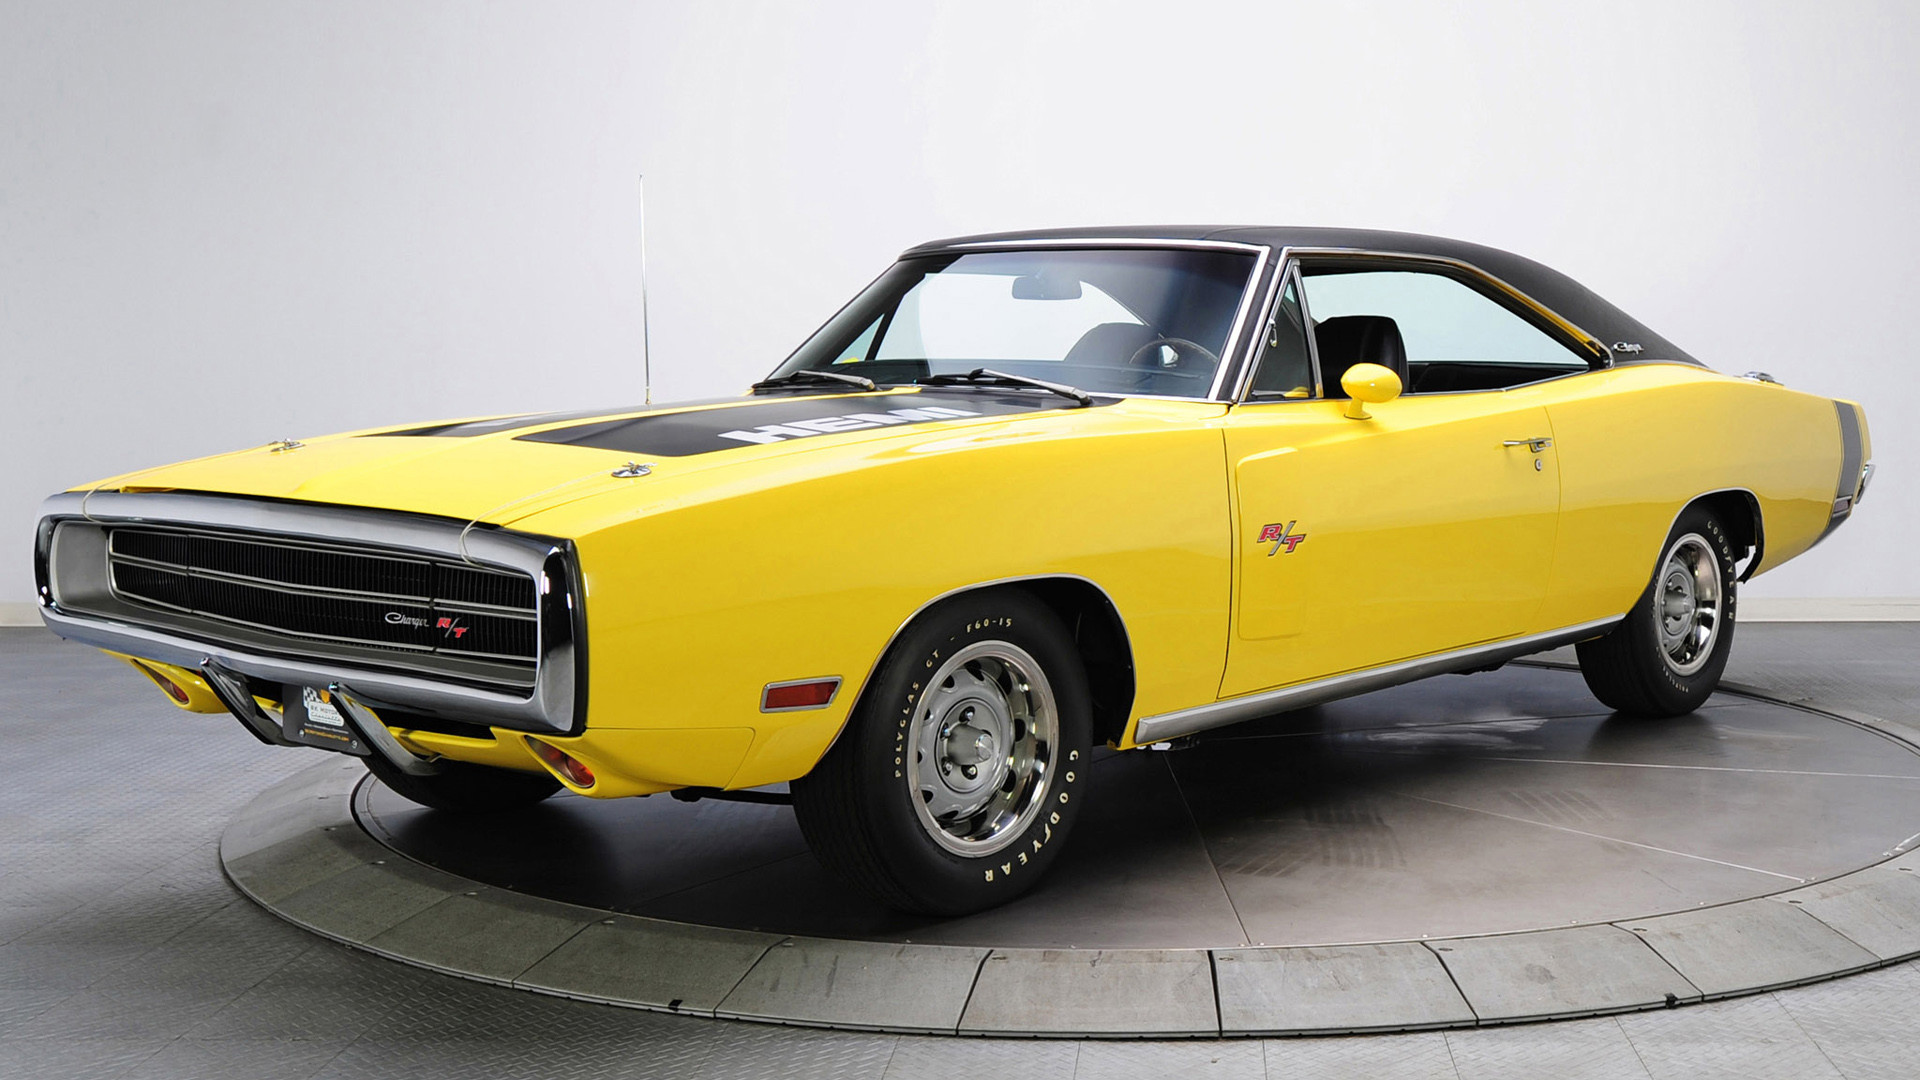 1970 dodge charger wallpaper hd 76 images. Black Bedroom Furniture Sets. Home Design Ideas